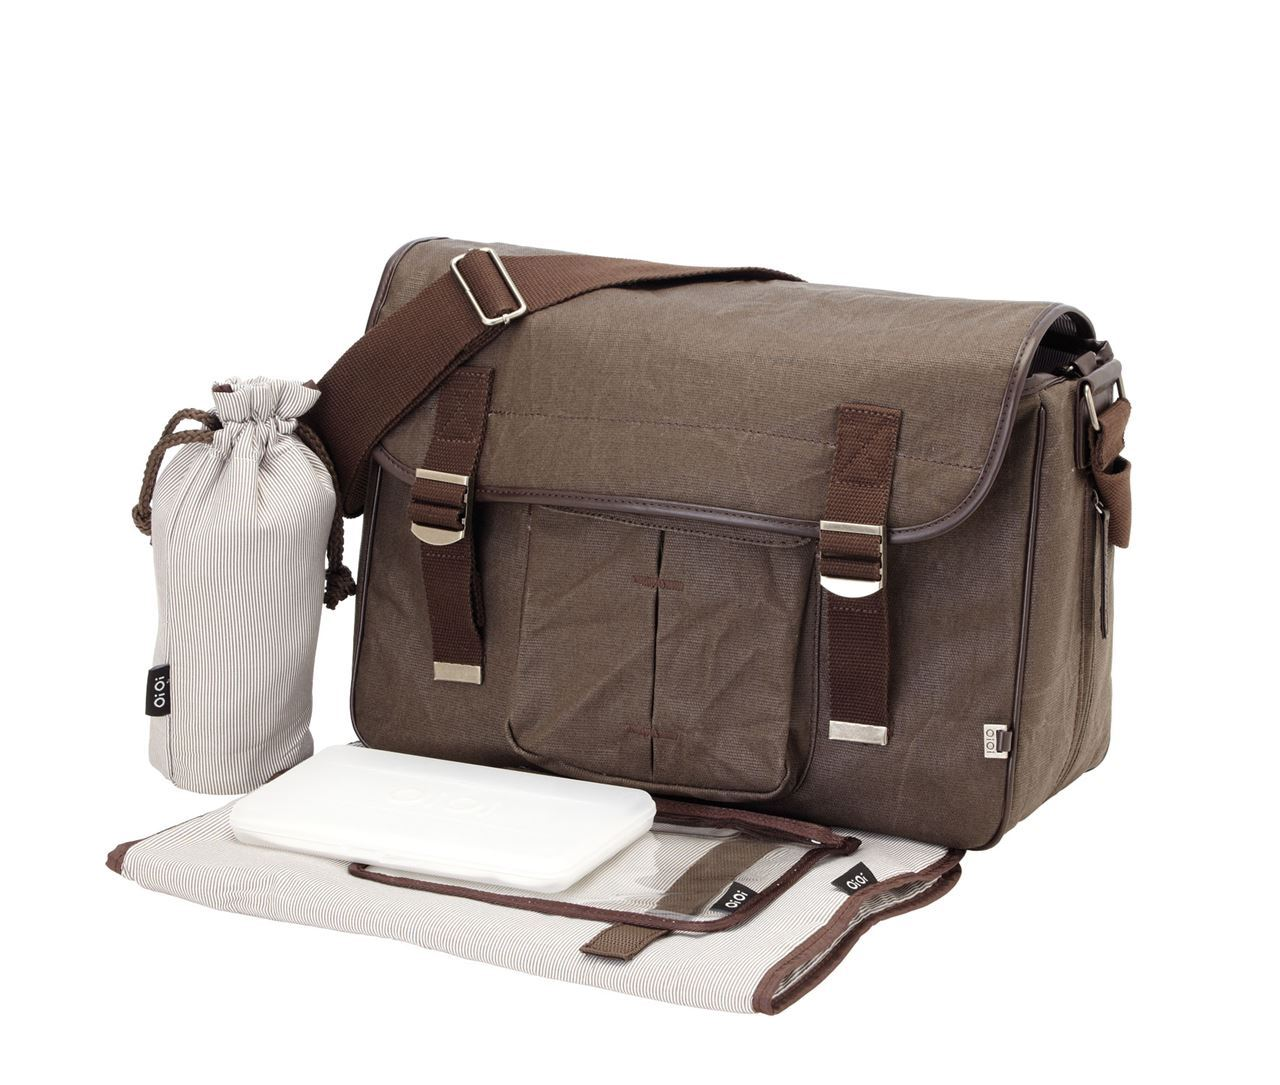 OiOi Men's Satchel Diaper Bag – Available in Wax Canvas or Leather – Women Love Them Too!